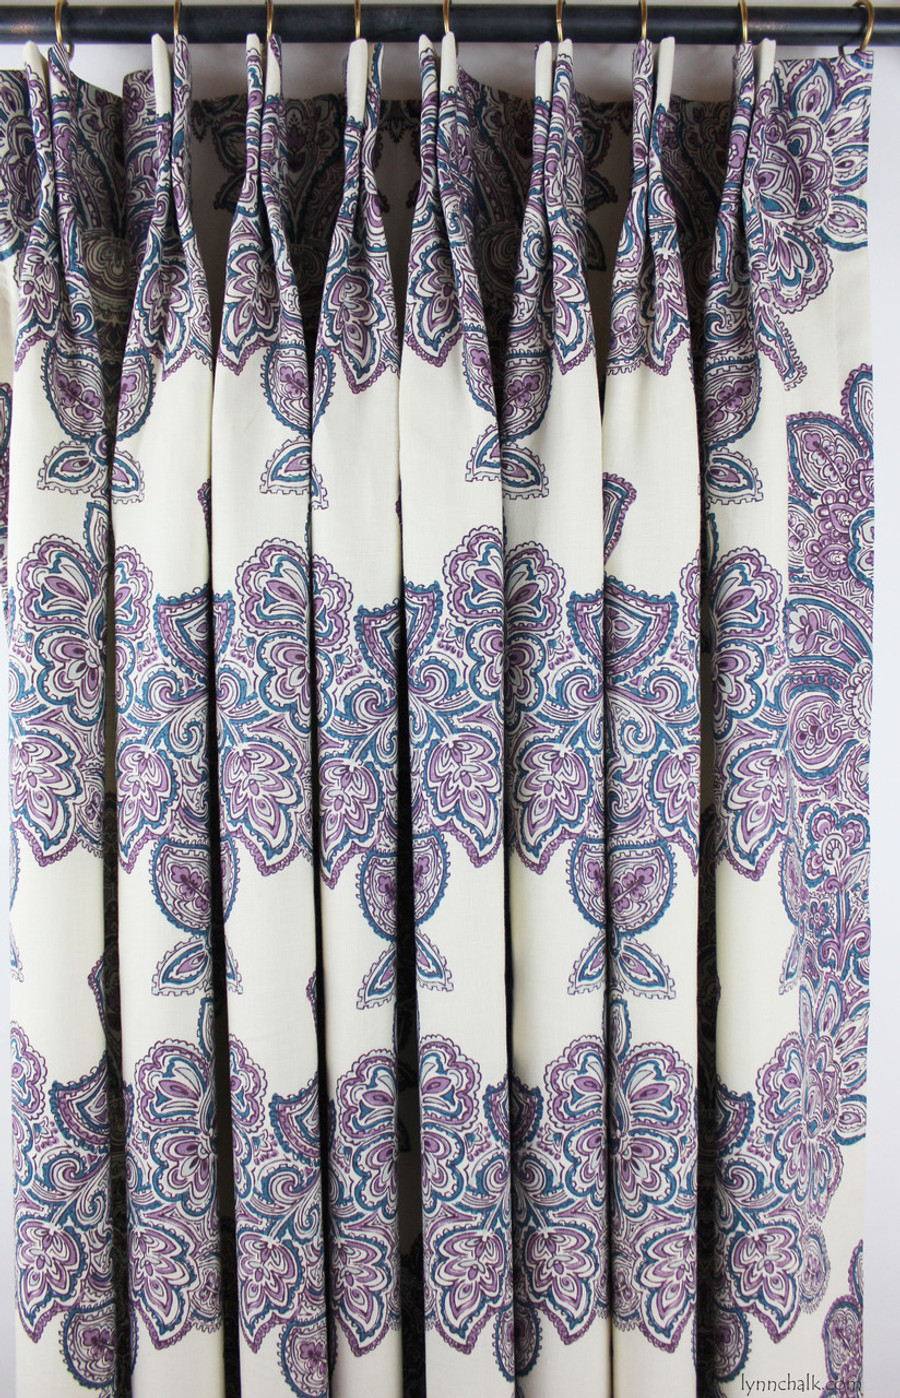 Duralee Maris Custom Drapes (shown in Currant-also comes in Rose, and Sea Green)